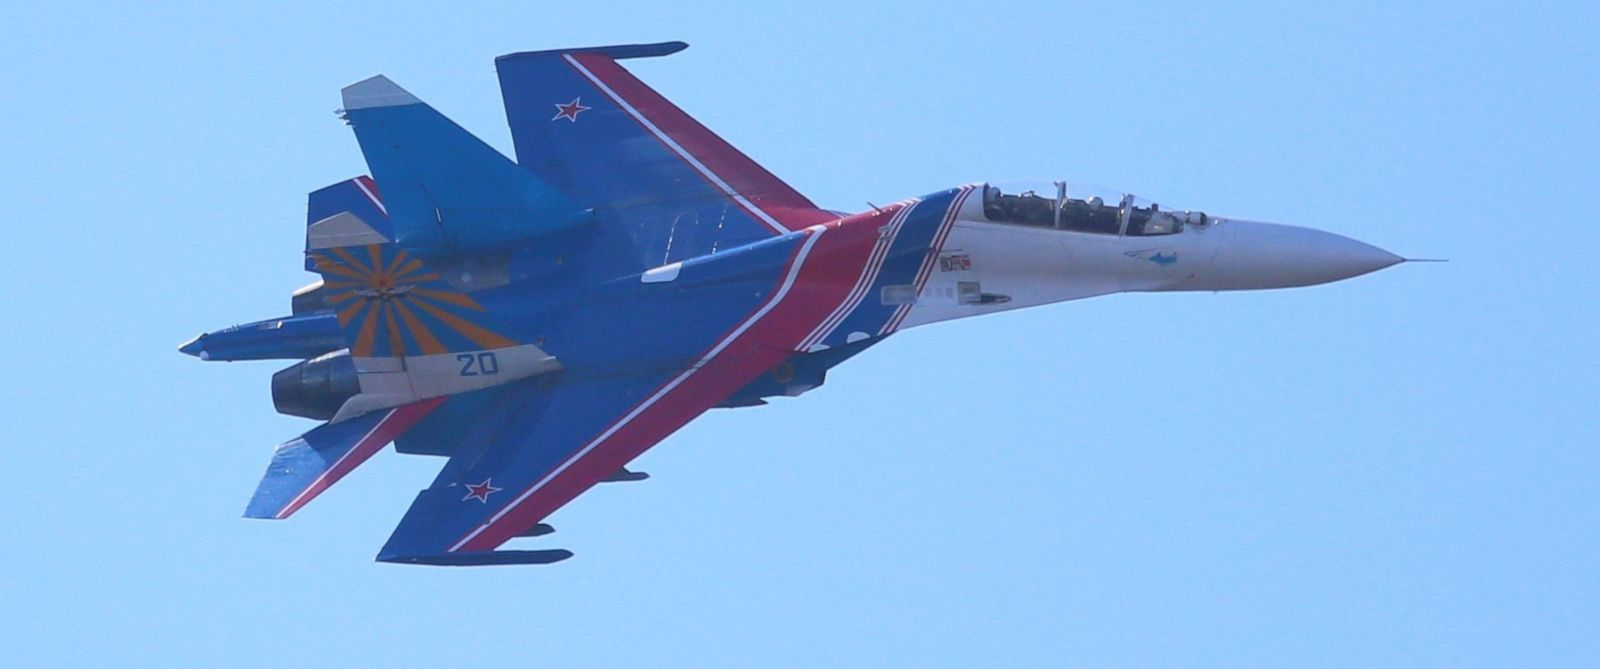 PHOTO: A Russian Sukhoi Su-27 jet is seen as part of a Russian Knights aerobatic demonstration over Saint Petersburg, Russia, April 25, 2015.